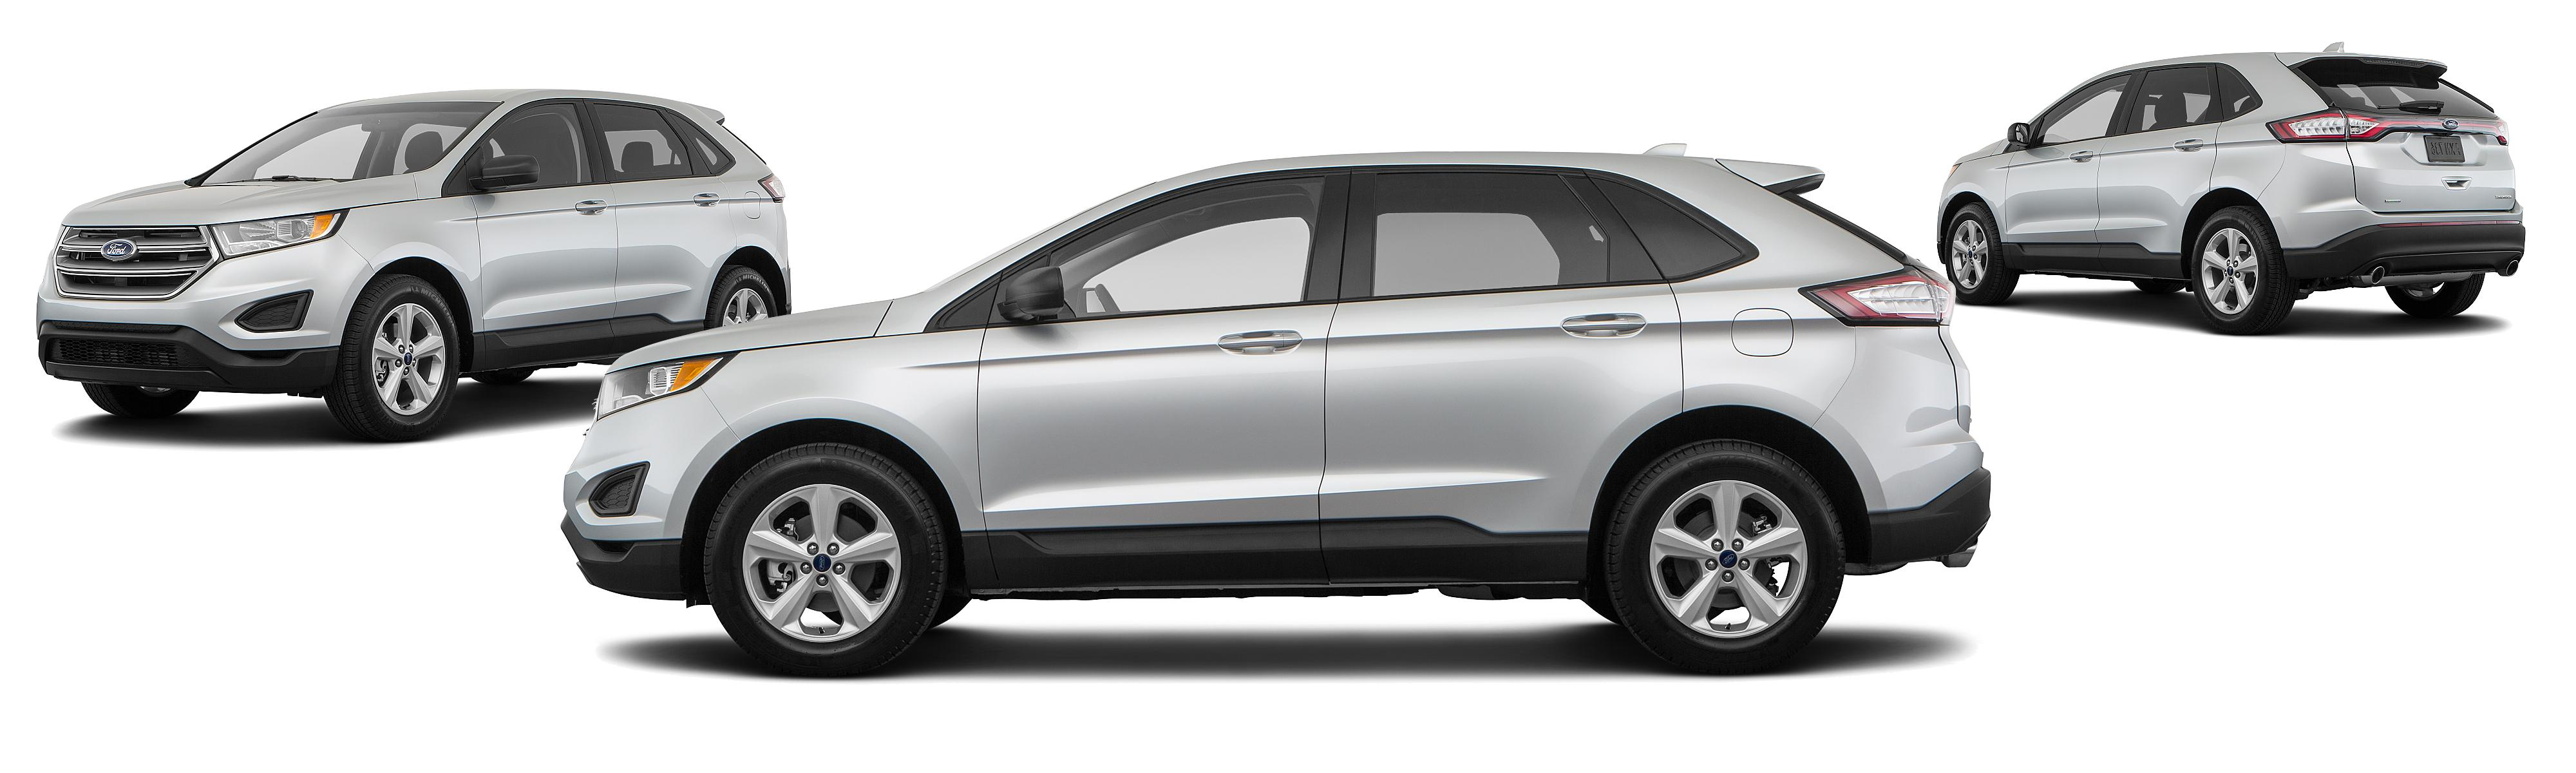 2018 Ford Edge Titanium 4dr Crossover Research GrooveCar